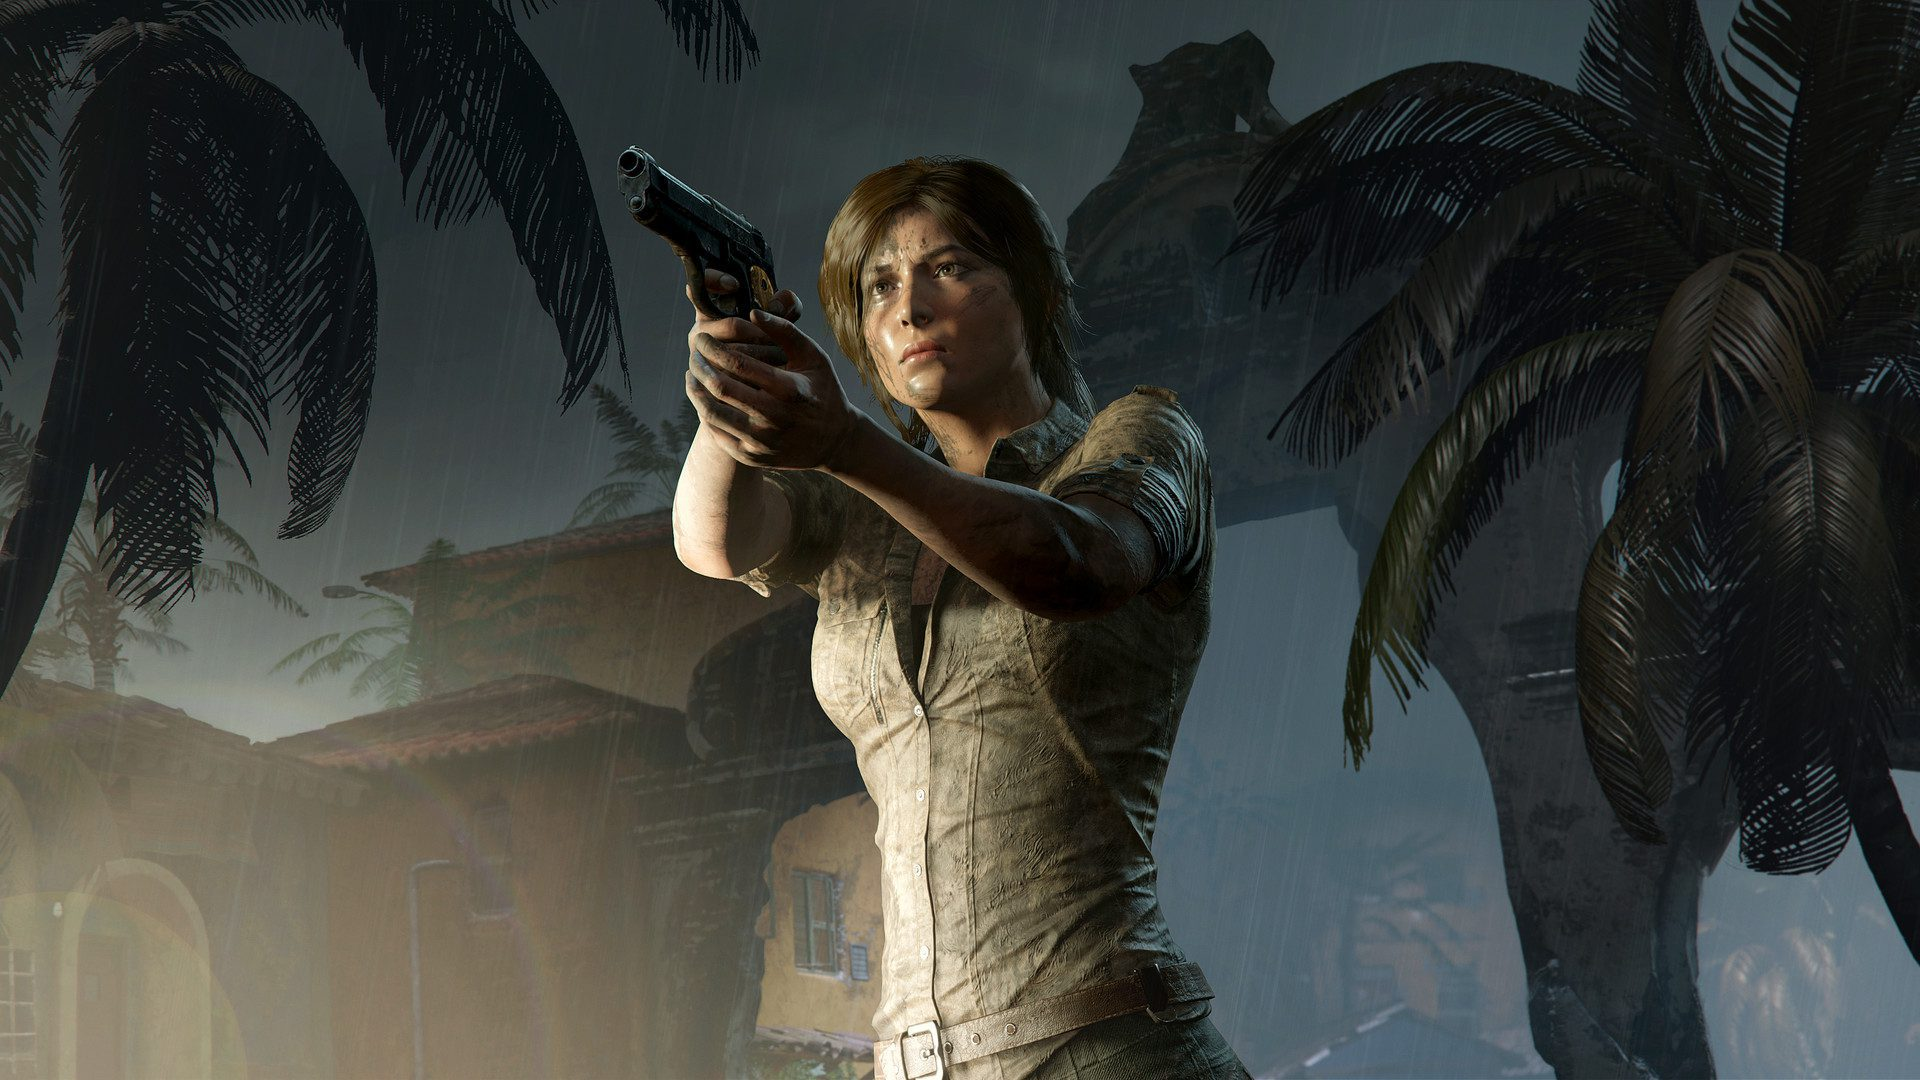 image-of-shadow-of-the-tomb-raider